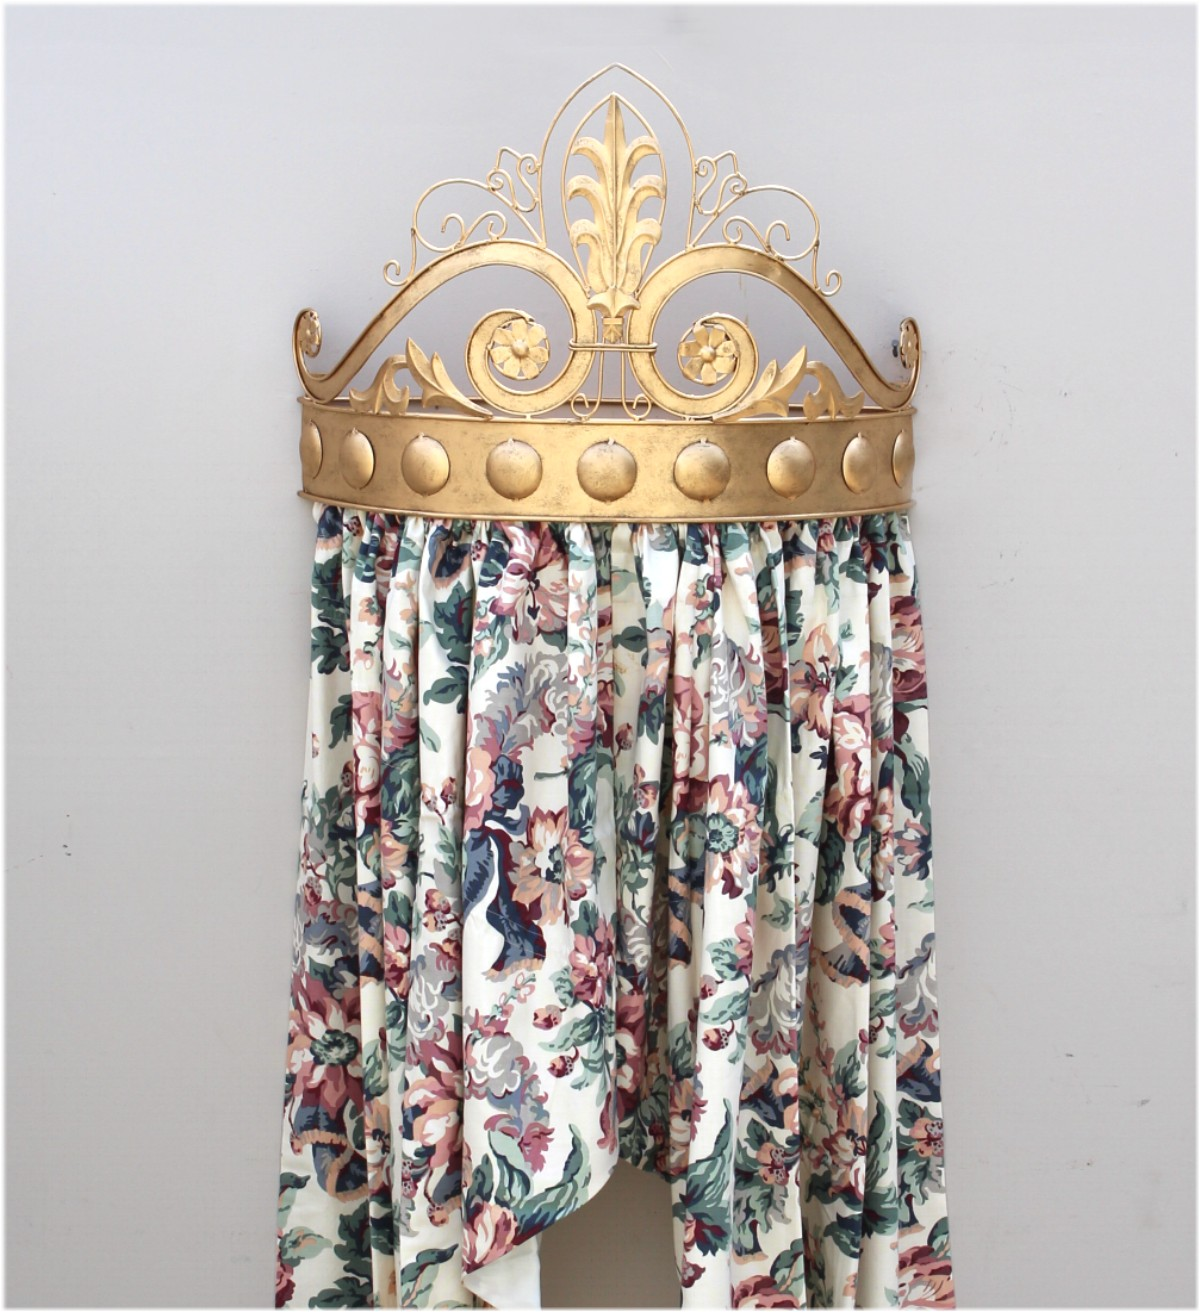 Home Furniture Diy Canopies Netting Bed Hardware Crown Canopy Holder Teester Curtains Wall Baby Princess Forged Iron Mtmstudioclub Com